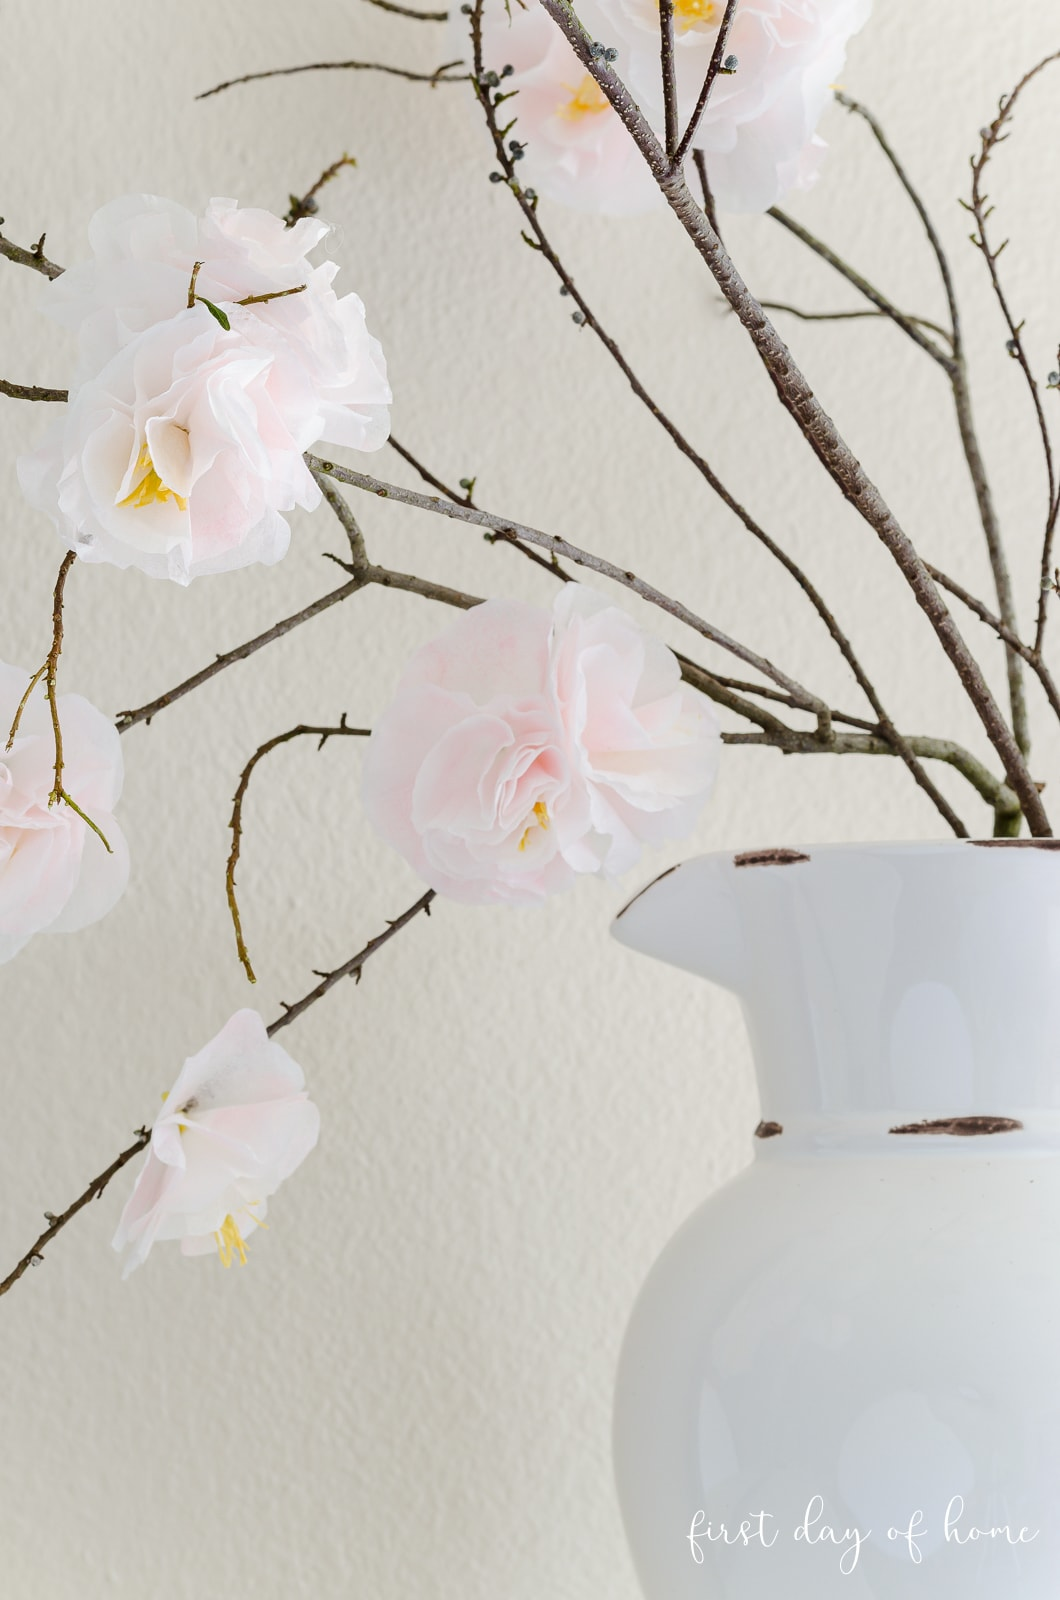 Faux cherry blossom stems in white vase